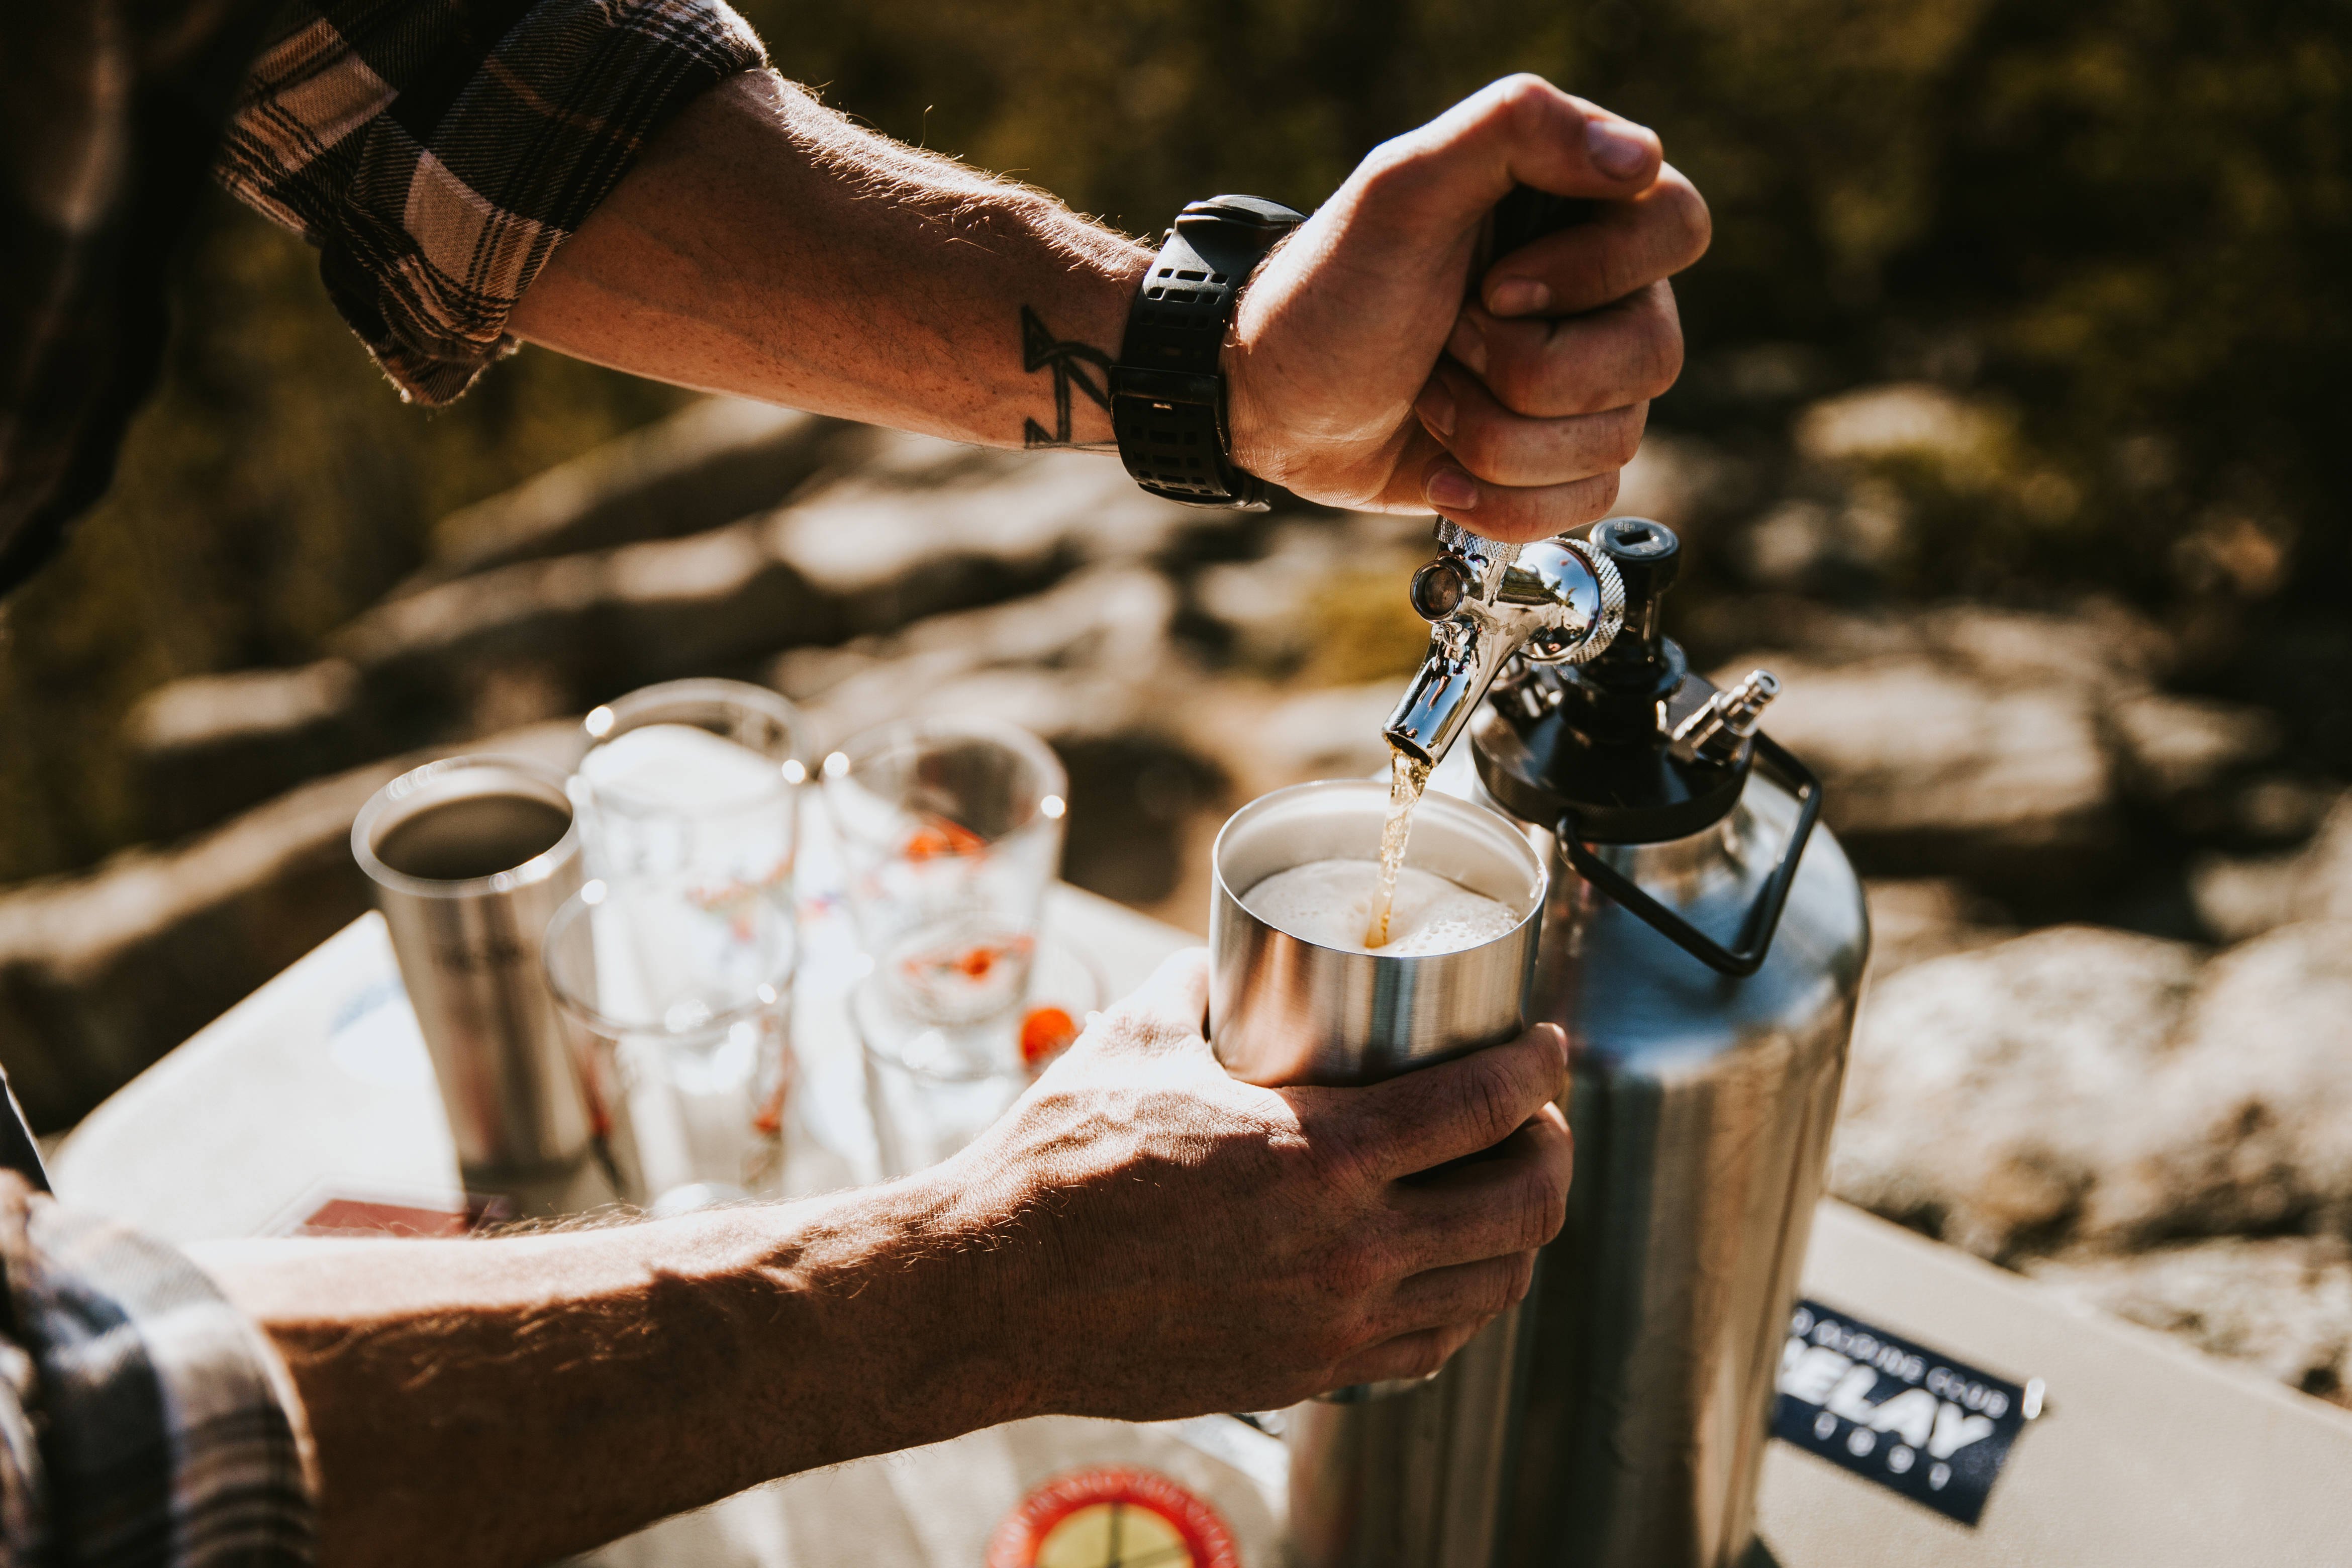 small-keg-pouring.jpg?mtime=20181121121331#asset:103829